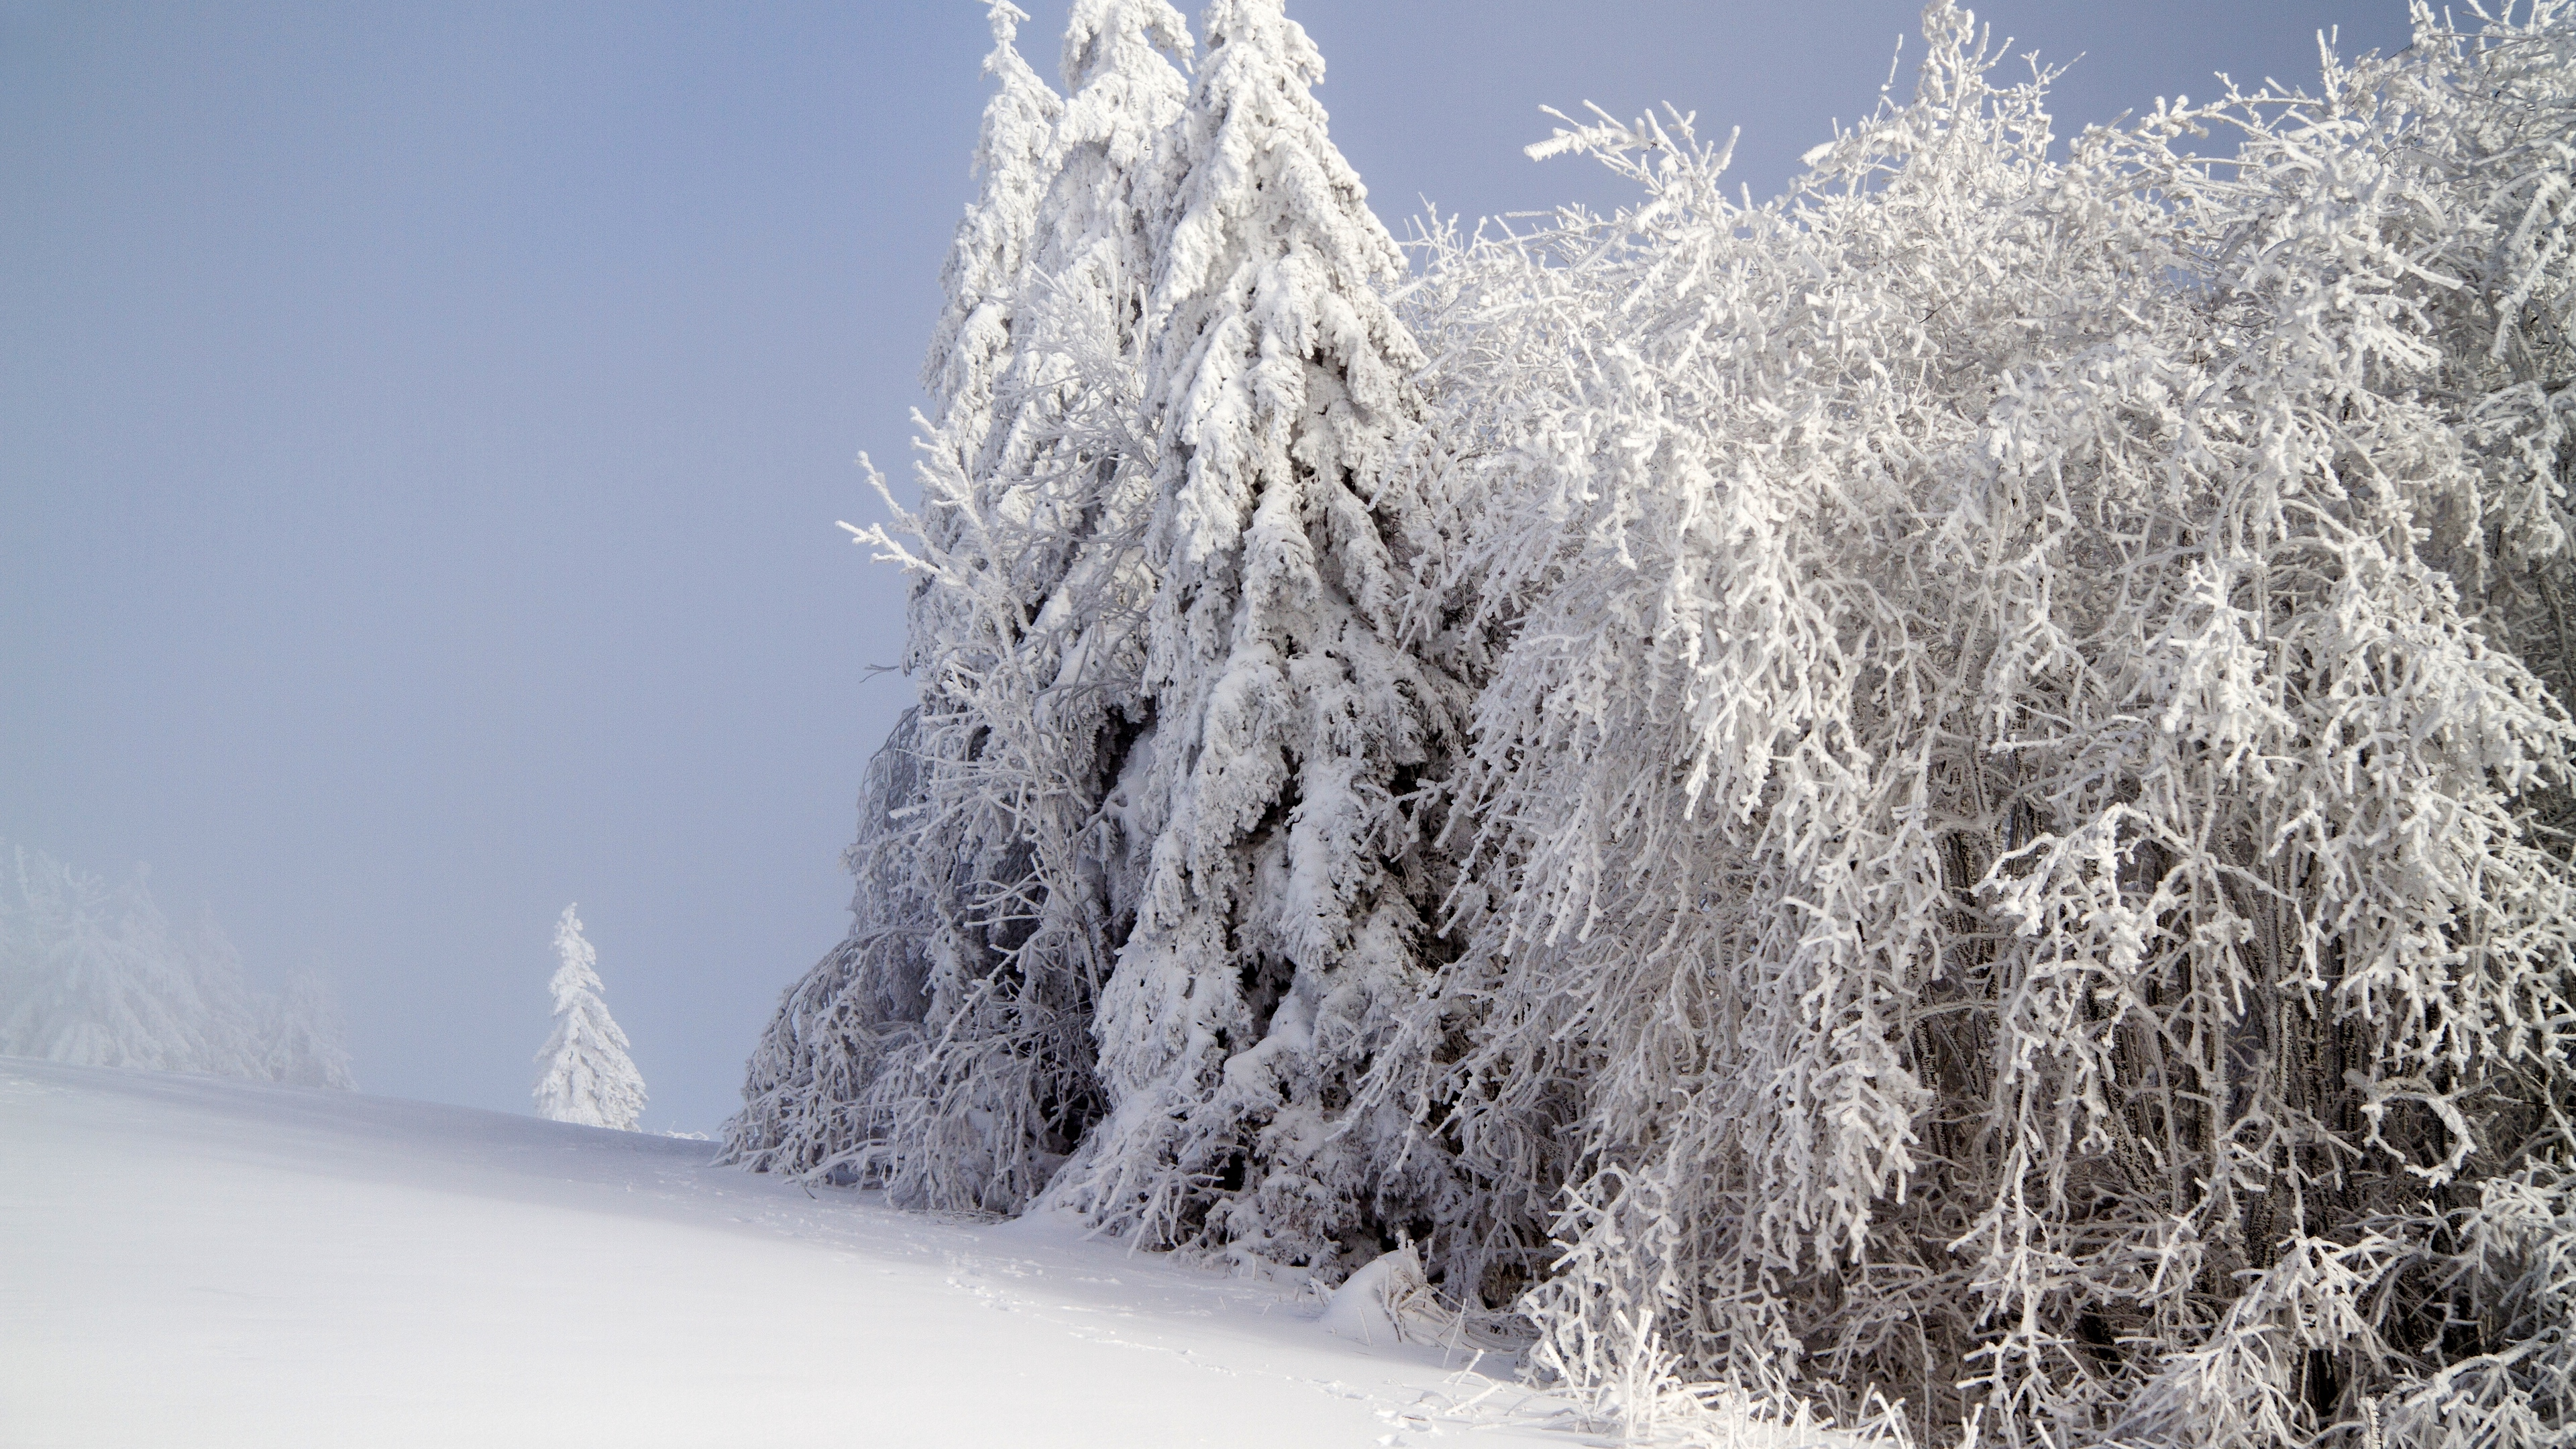 forest winter snow 4k 1541114490 - forest, winter, snow 4k - Winter, Snow, Forest